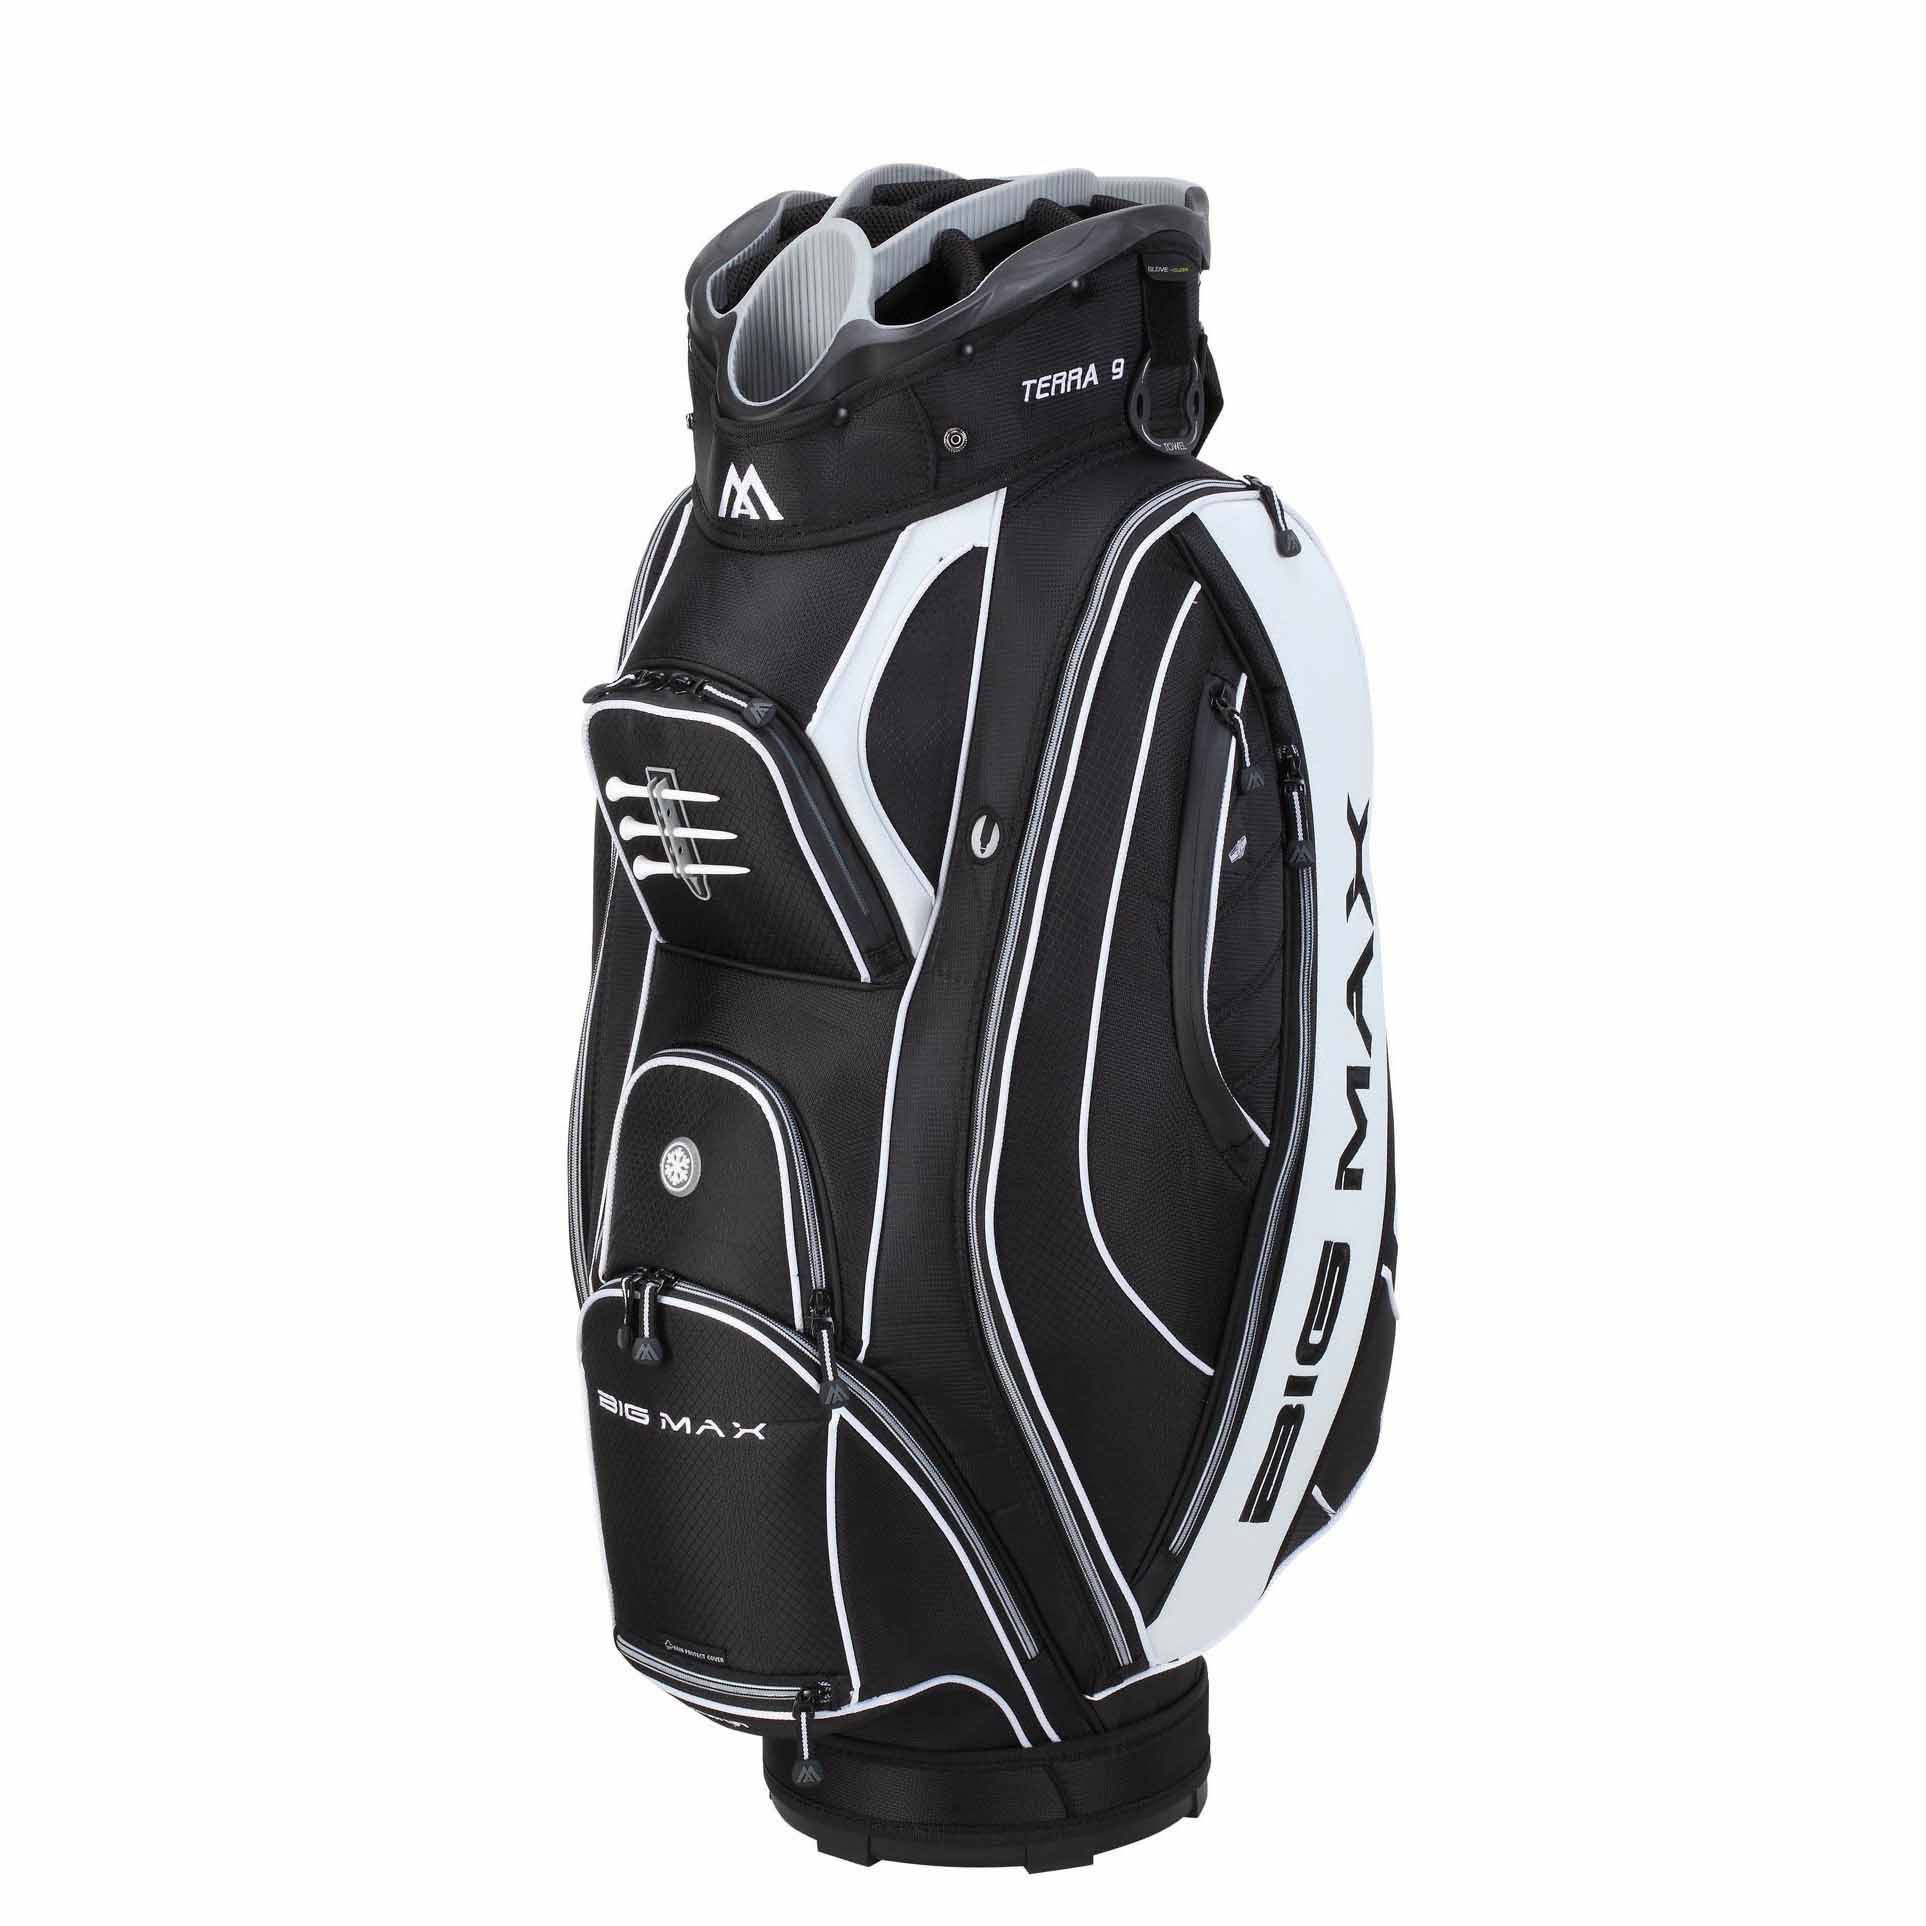 Big Max Terra 9 Cart Bag Sweatband Com